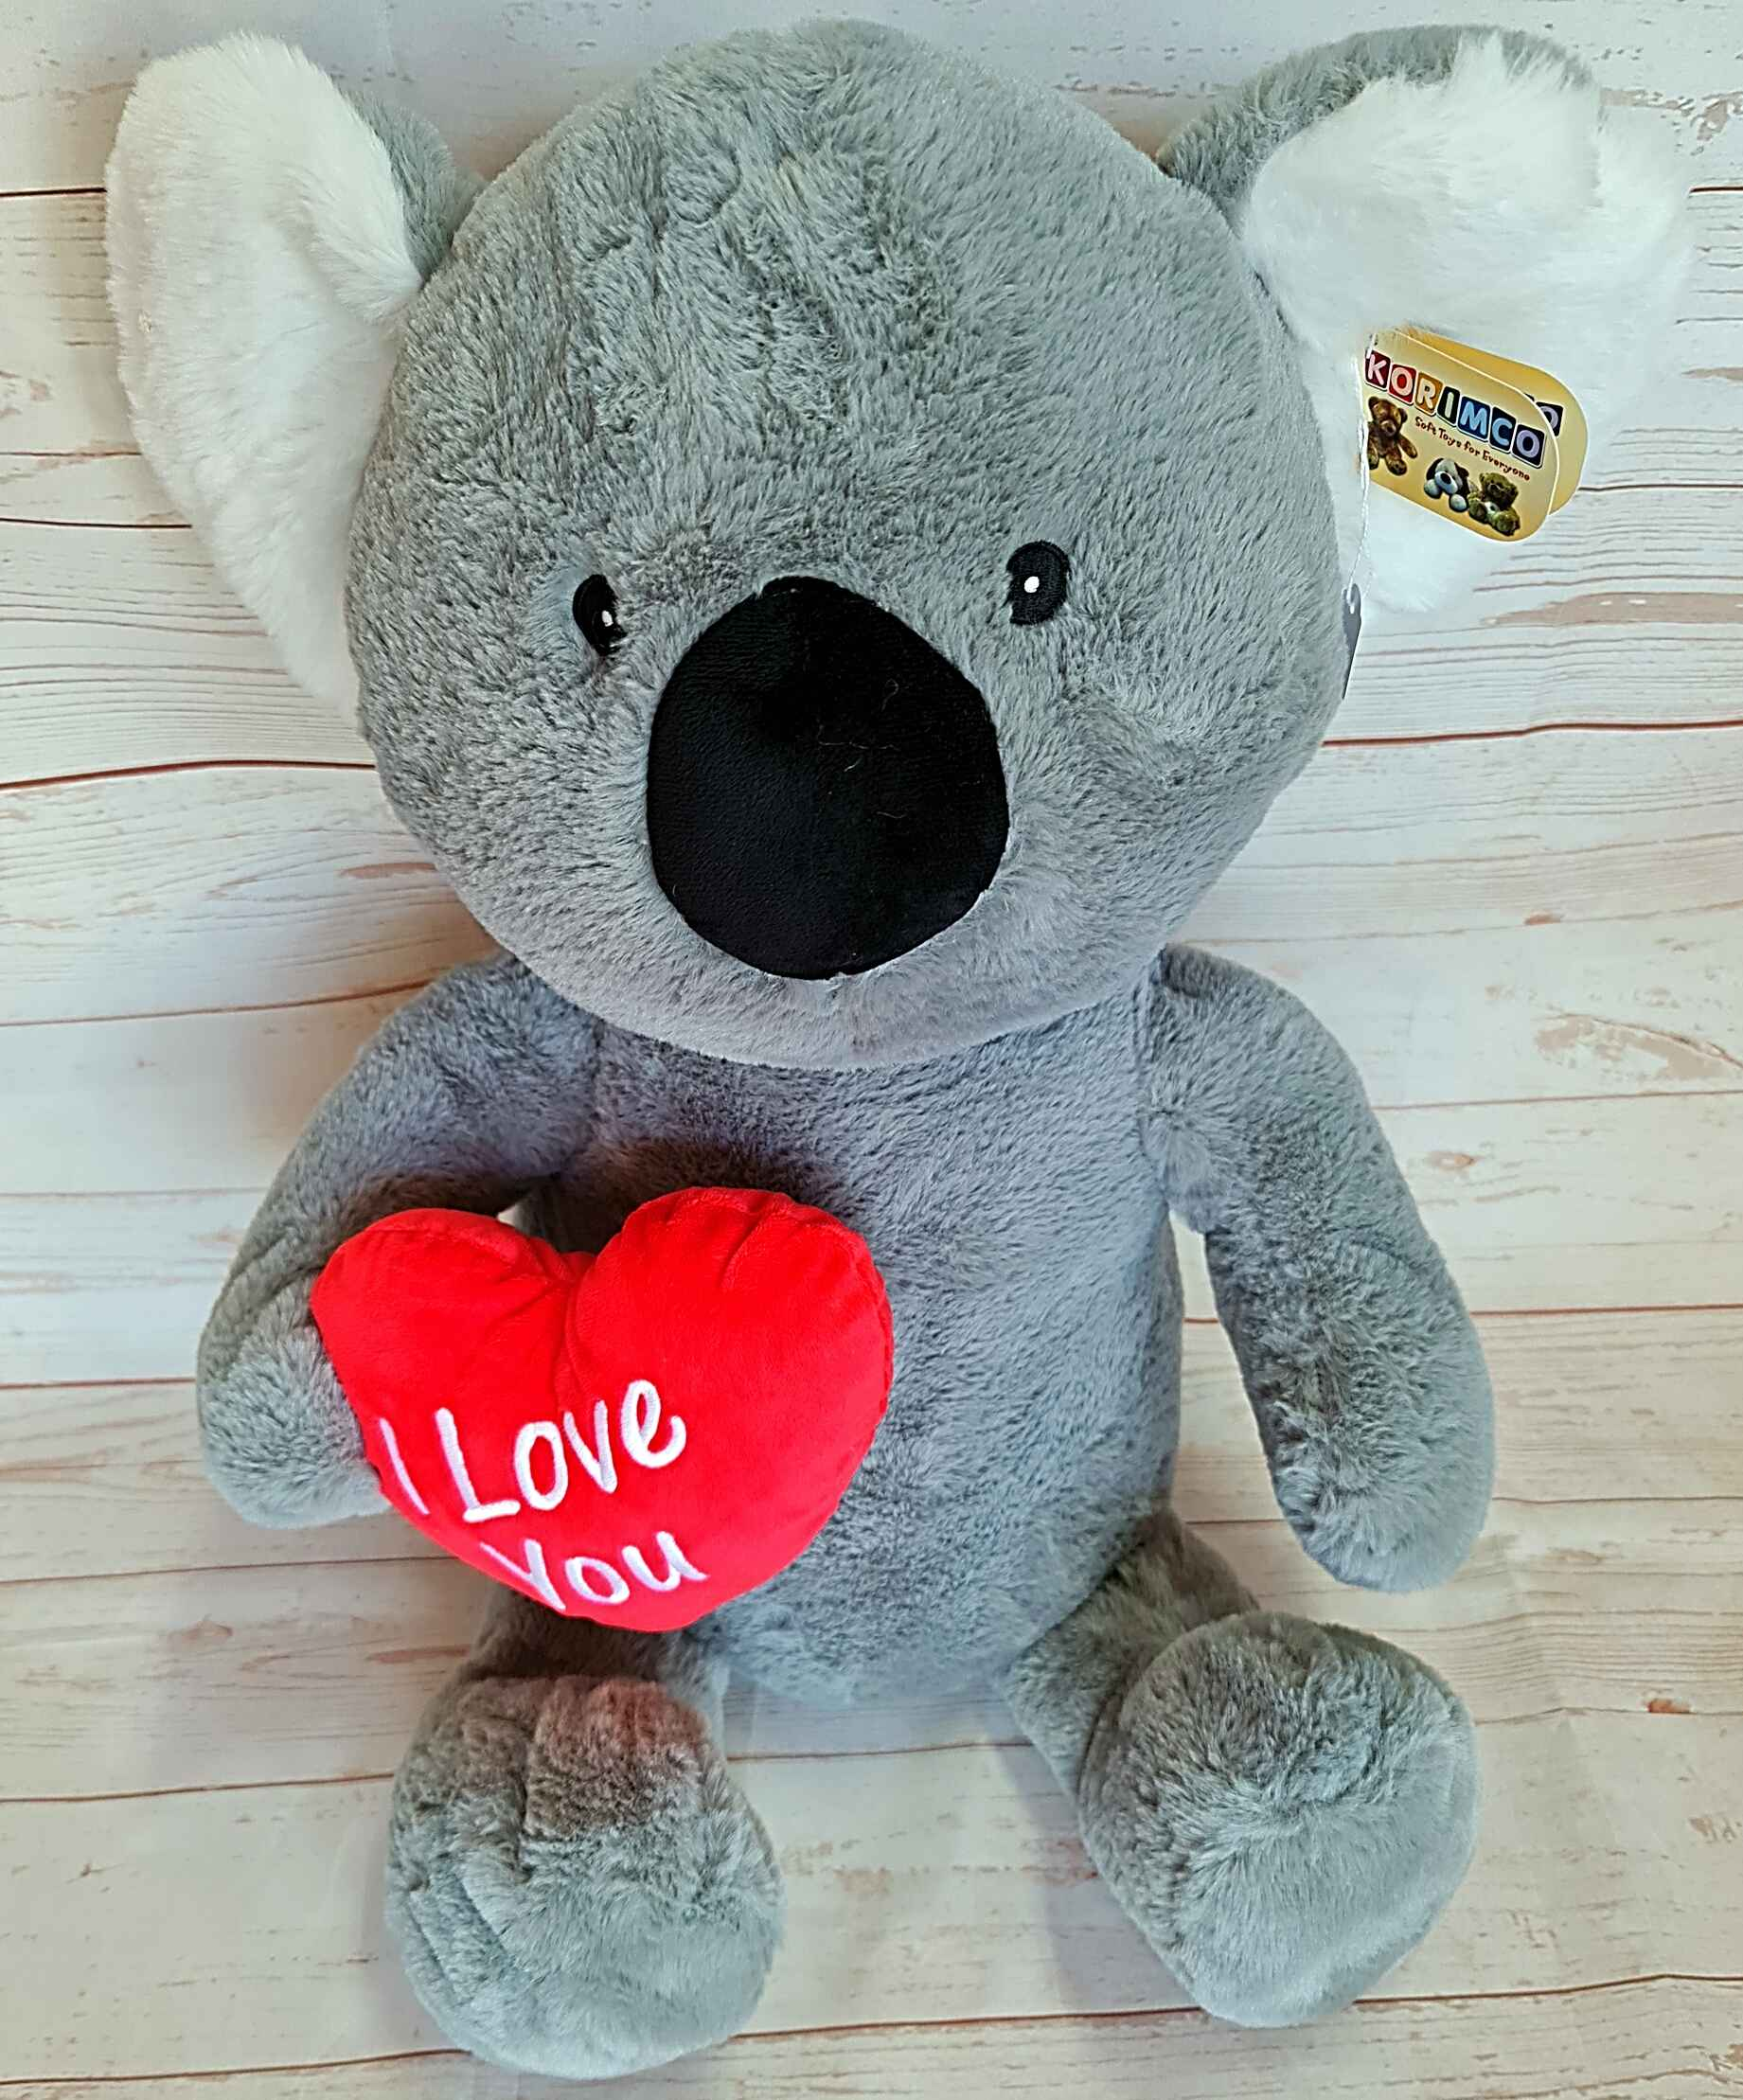 The very unique Snuggles the Koala, sits approximately 40cm in height, and is very cuddly.   With the message of love, Snuggles, is sure to melt hearts.